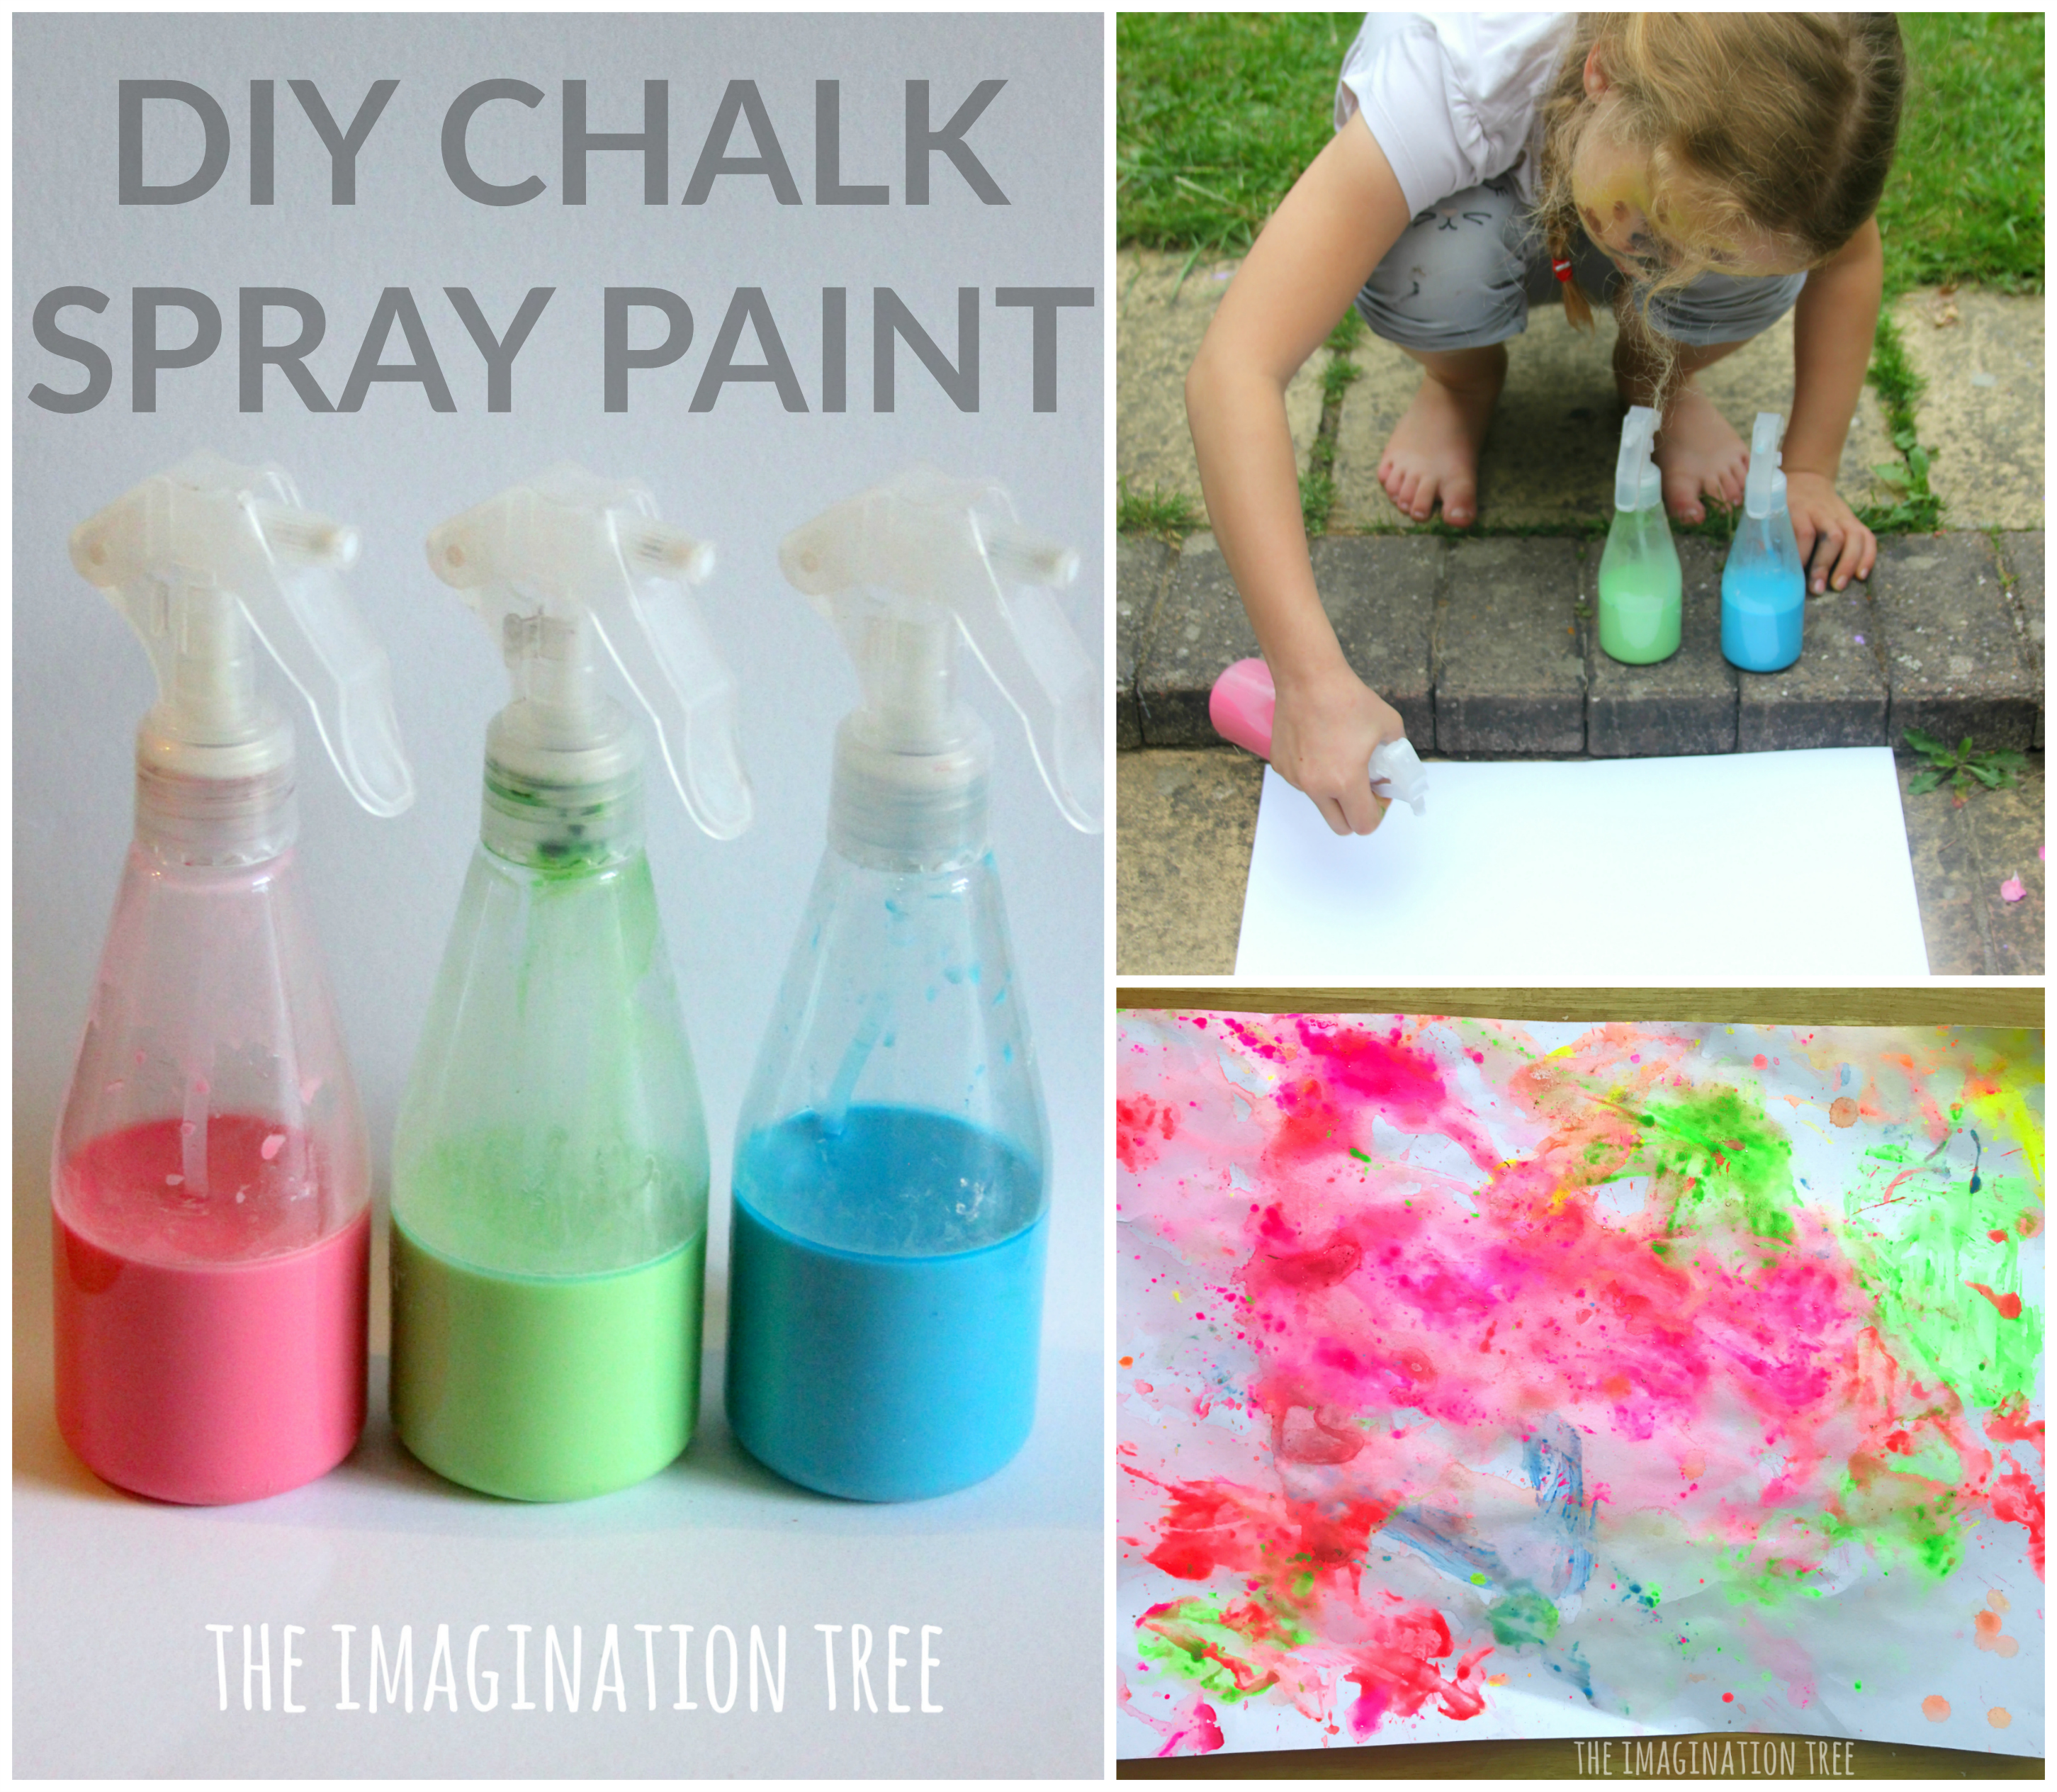 Diy Chalk Spray Paint Recipe The Imagination Tree